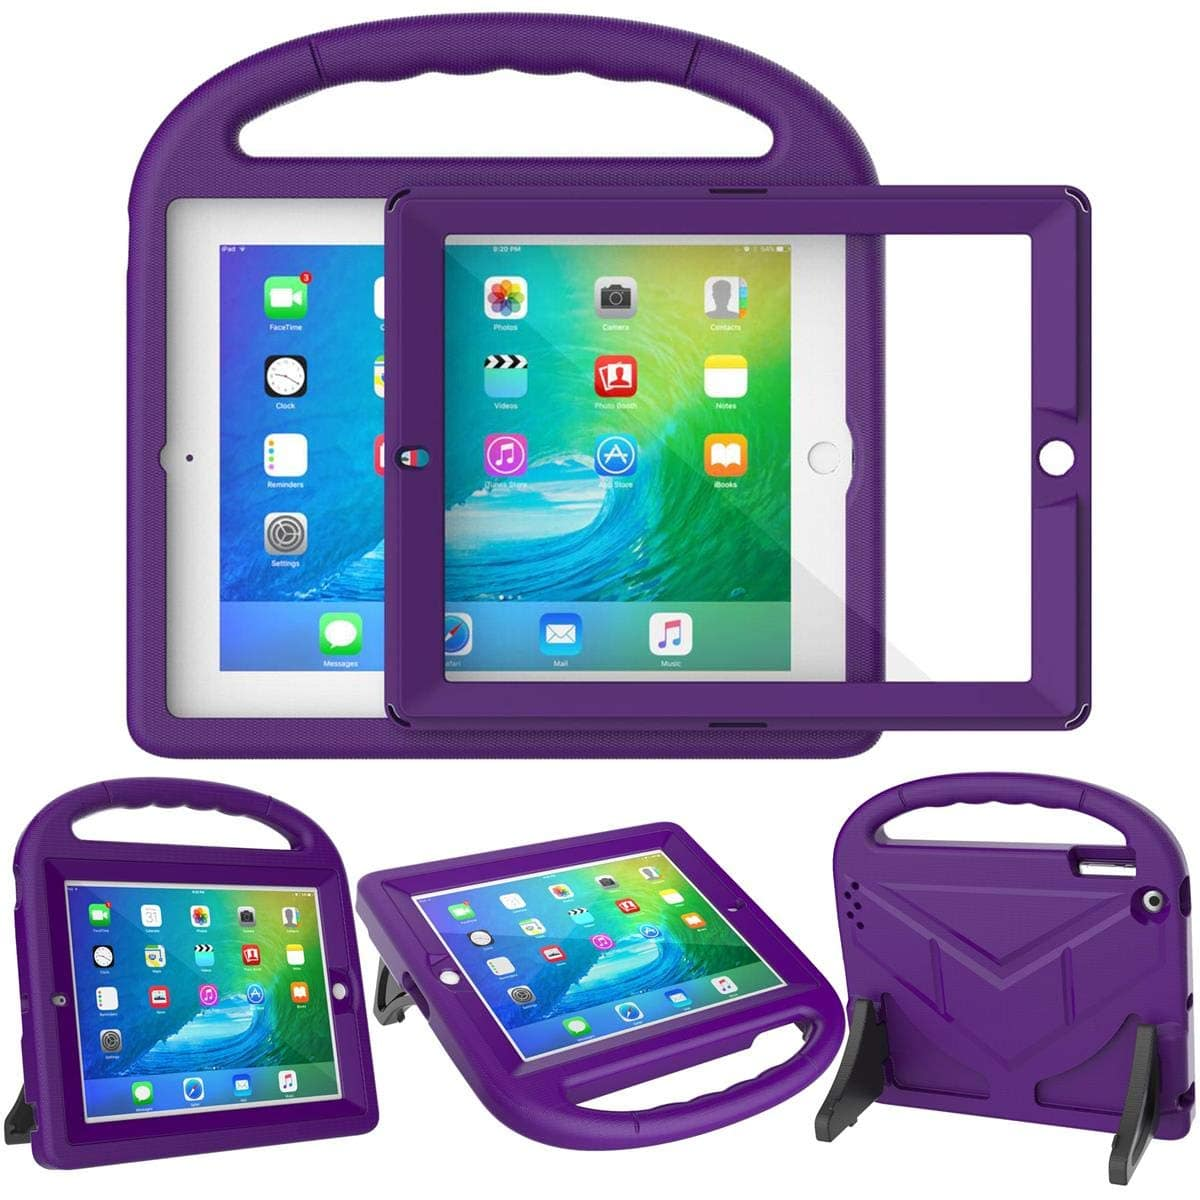 Suplik iPad 2/3/4(Old Model) Case with Screen Protector for Kids 50% Off after code $8.49